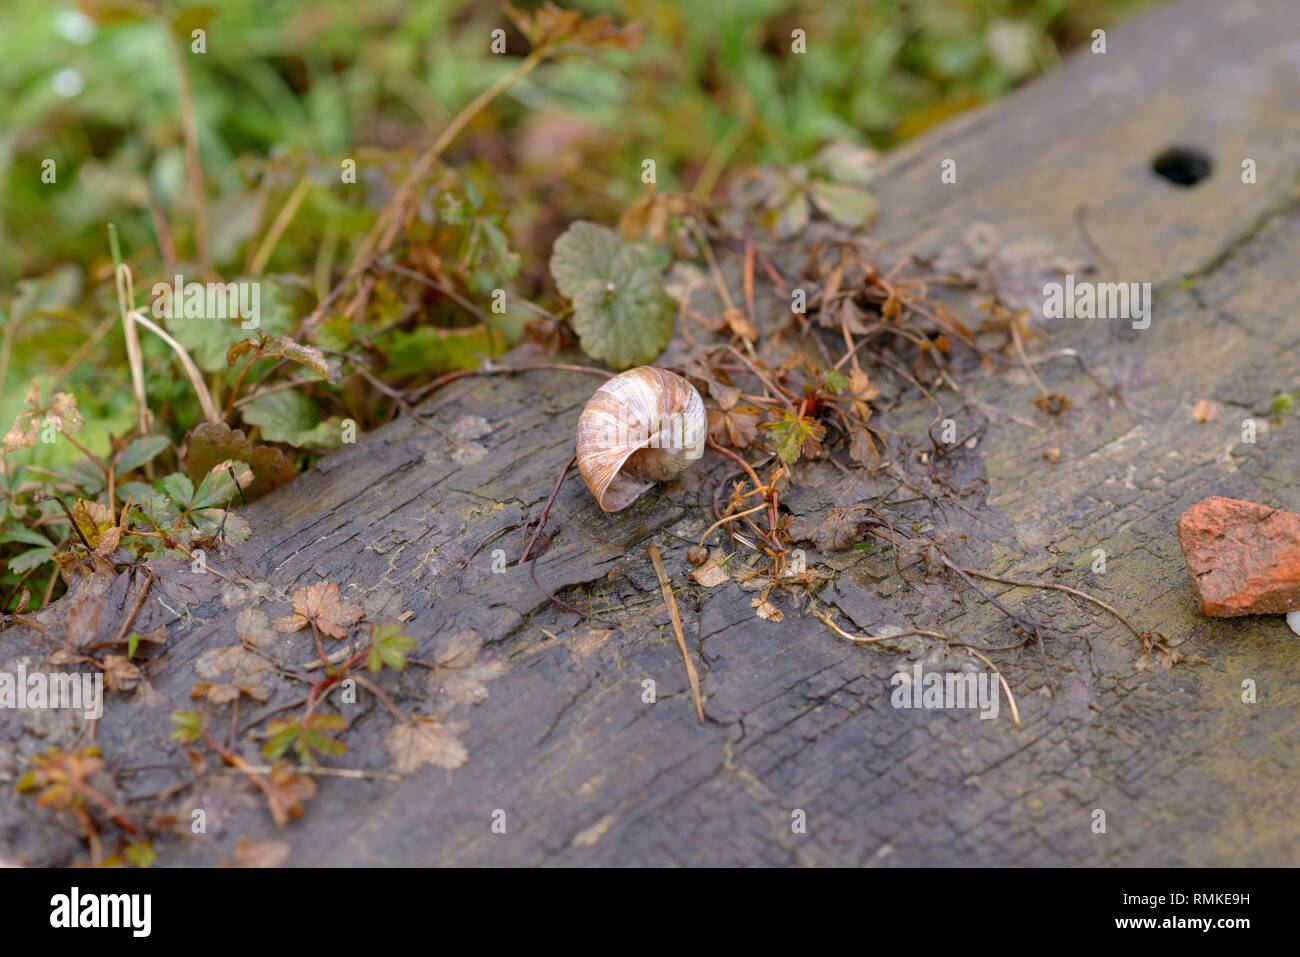 Empty discarded land or terrestrial snail shell lying on a concrete pathway with a small tangle of uprooted vegetation from the field or lawn alongsid - Stock Image